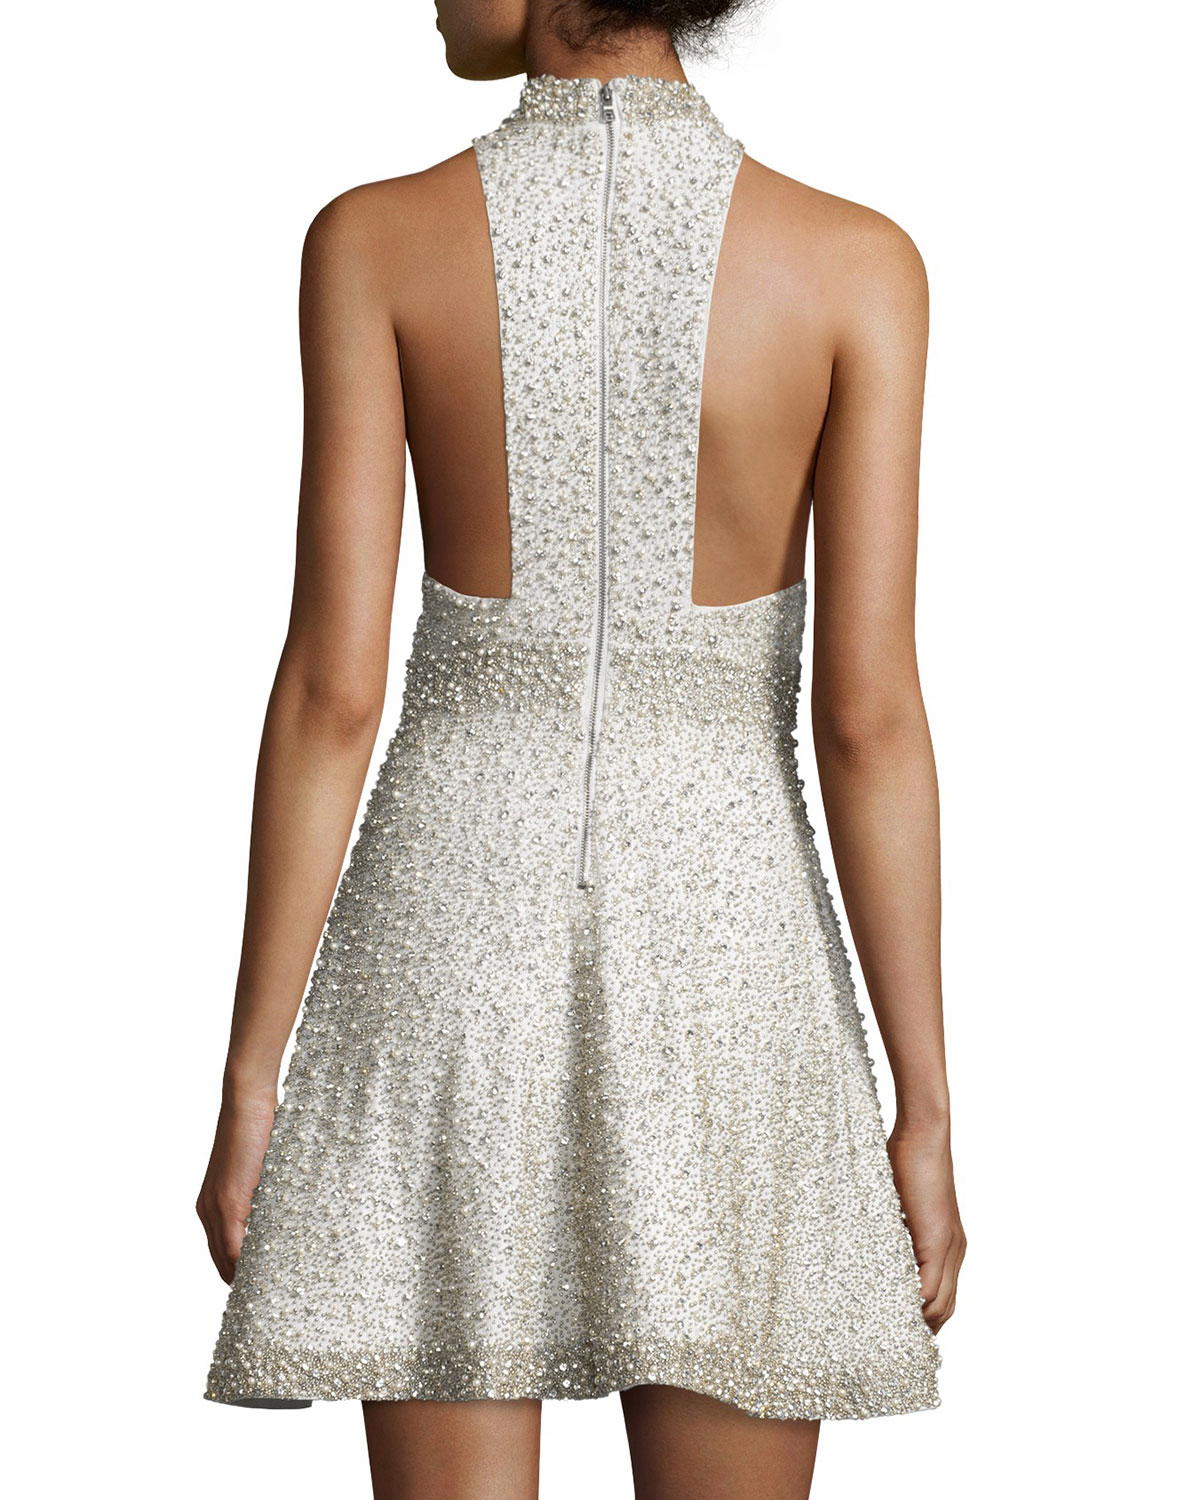 Alice and olivia white racerback dress